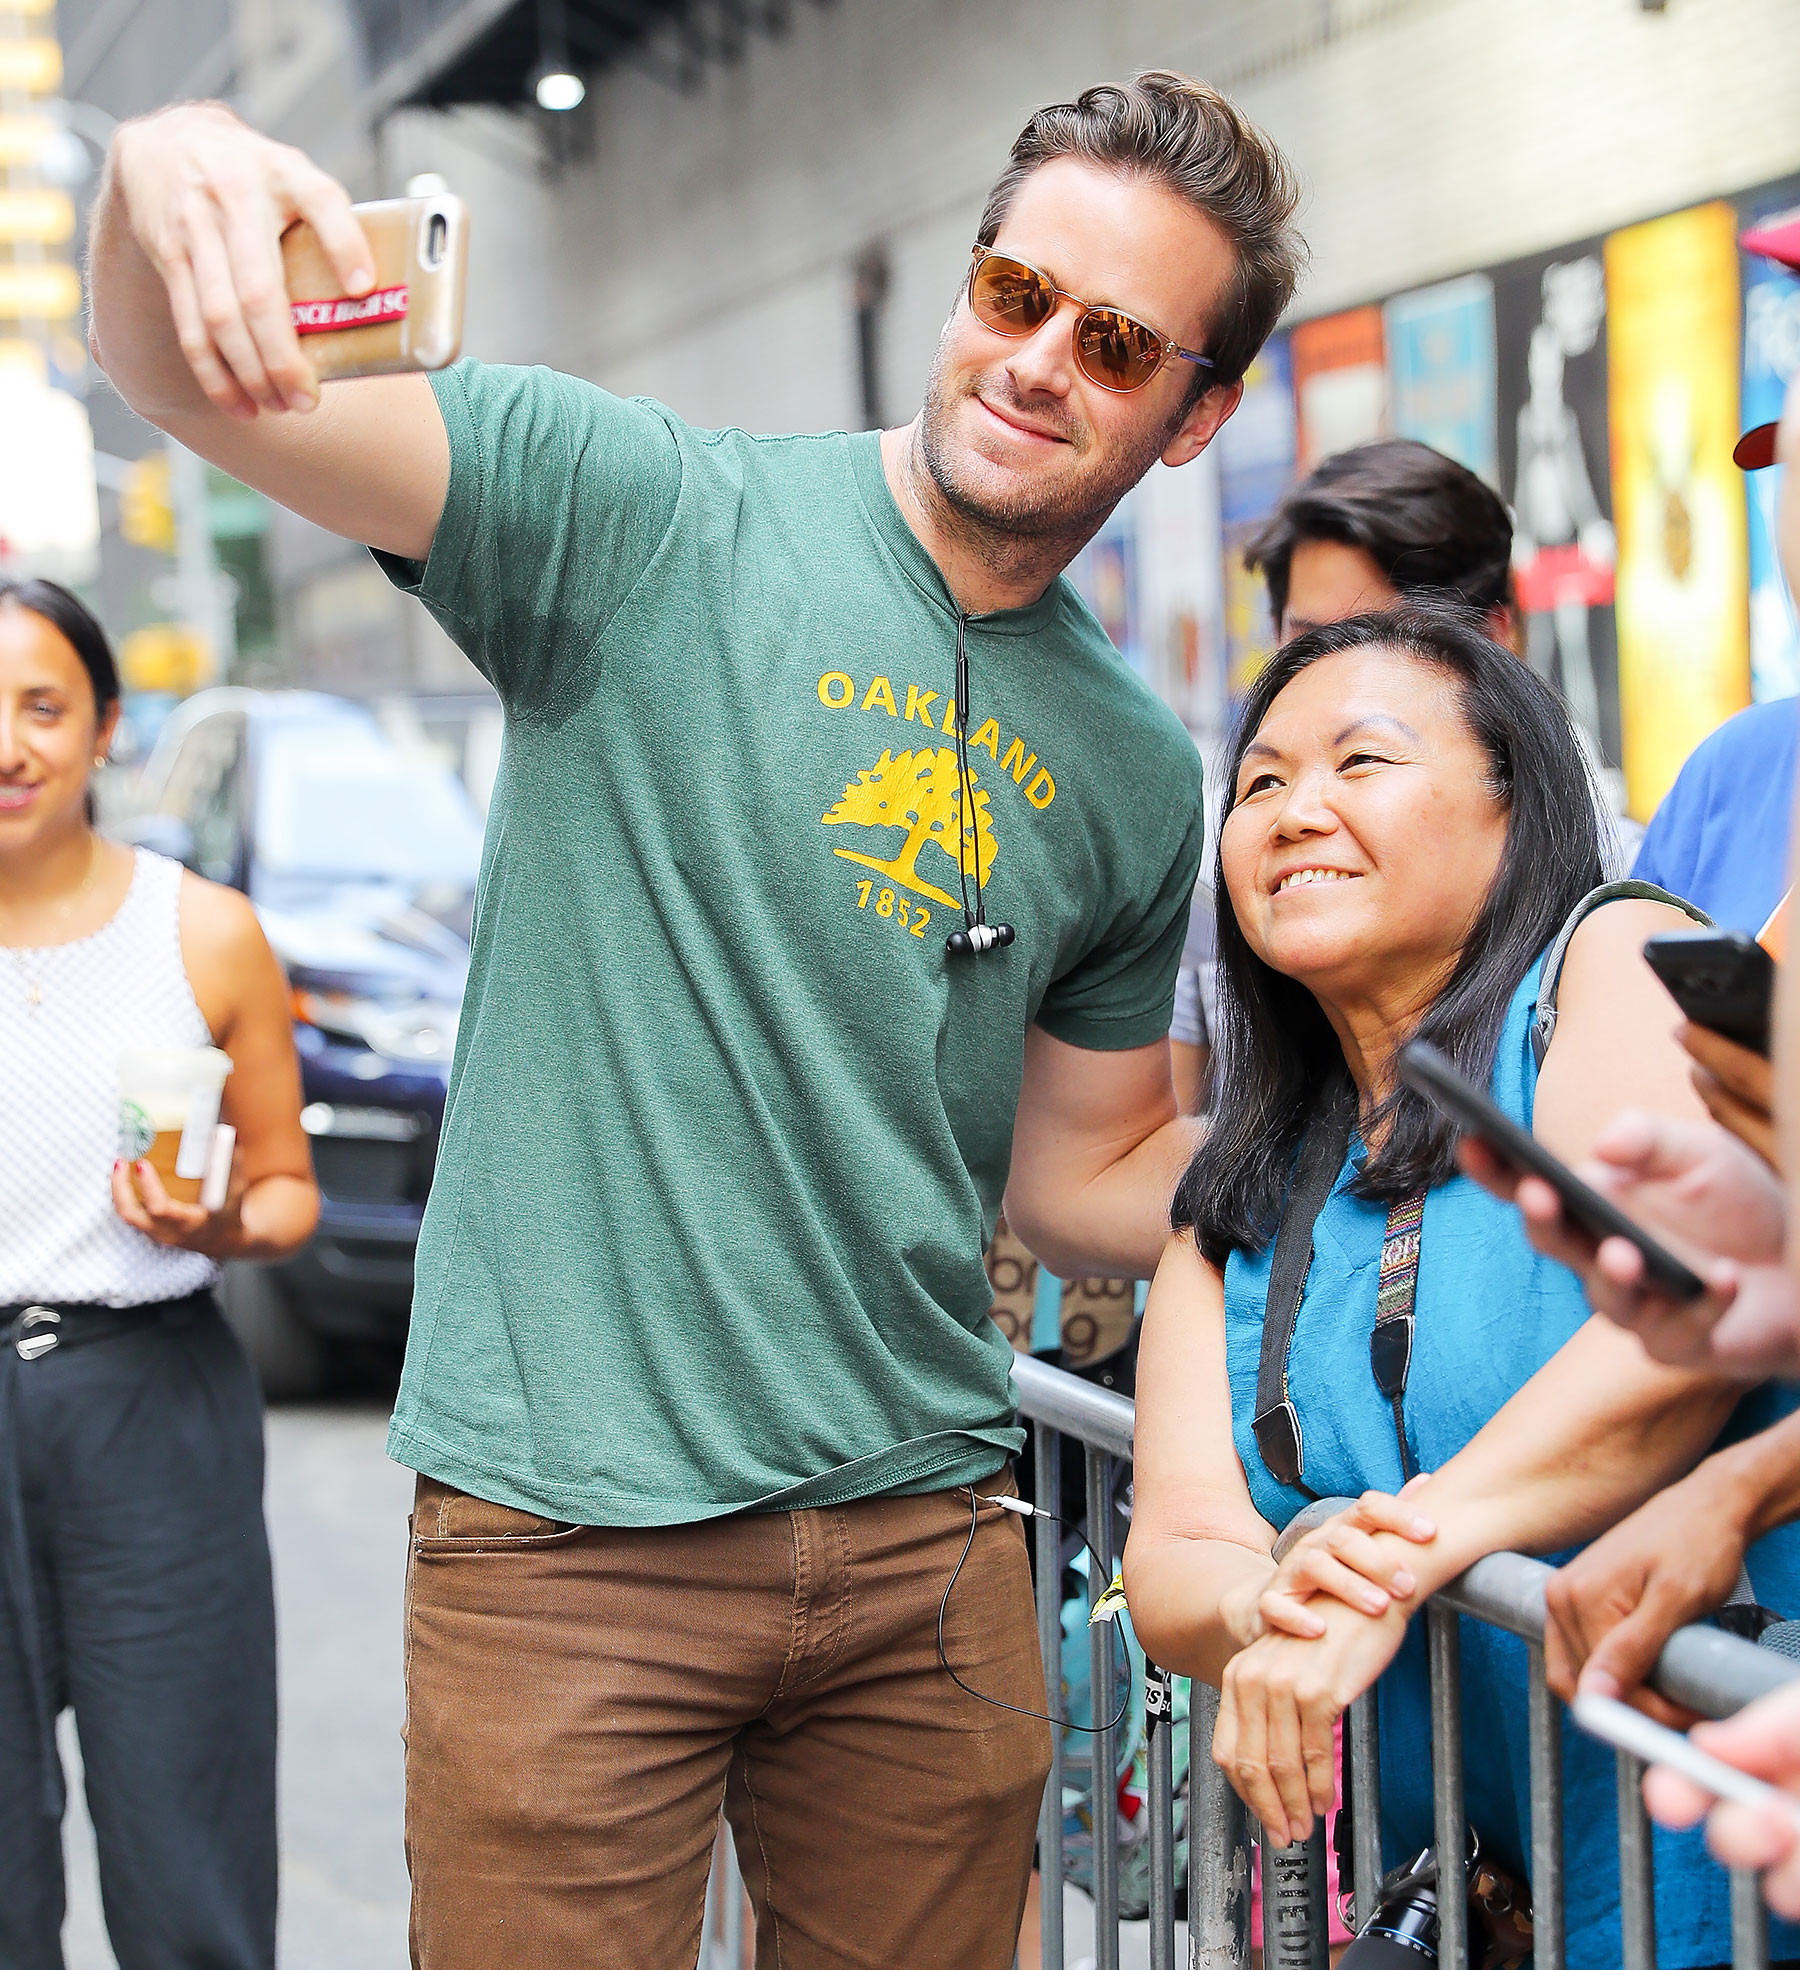 Armie Hammer is seen taking selfies with fans outside The Late Show with Stephen Colbert.